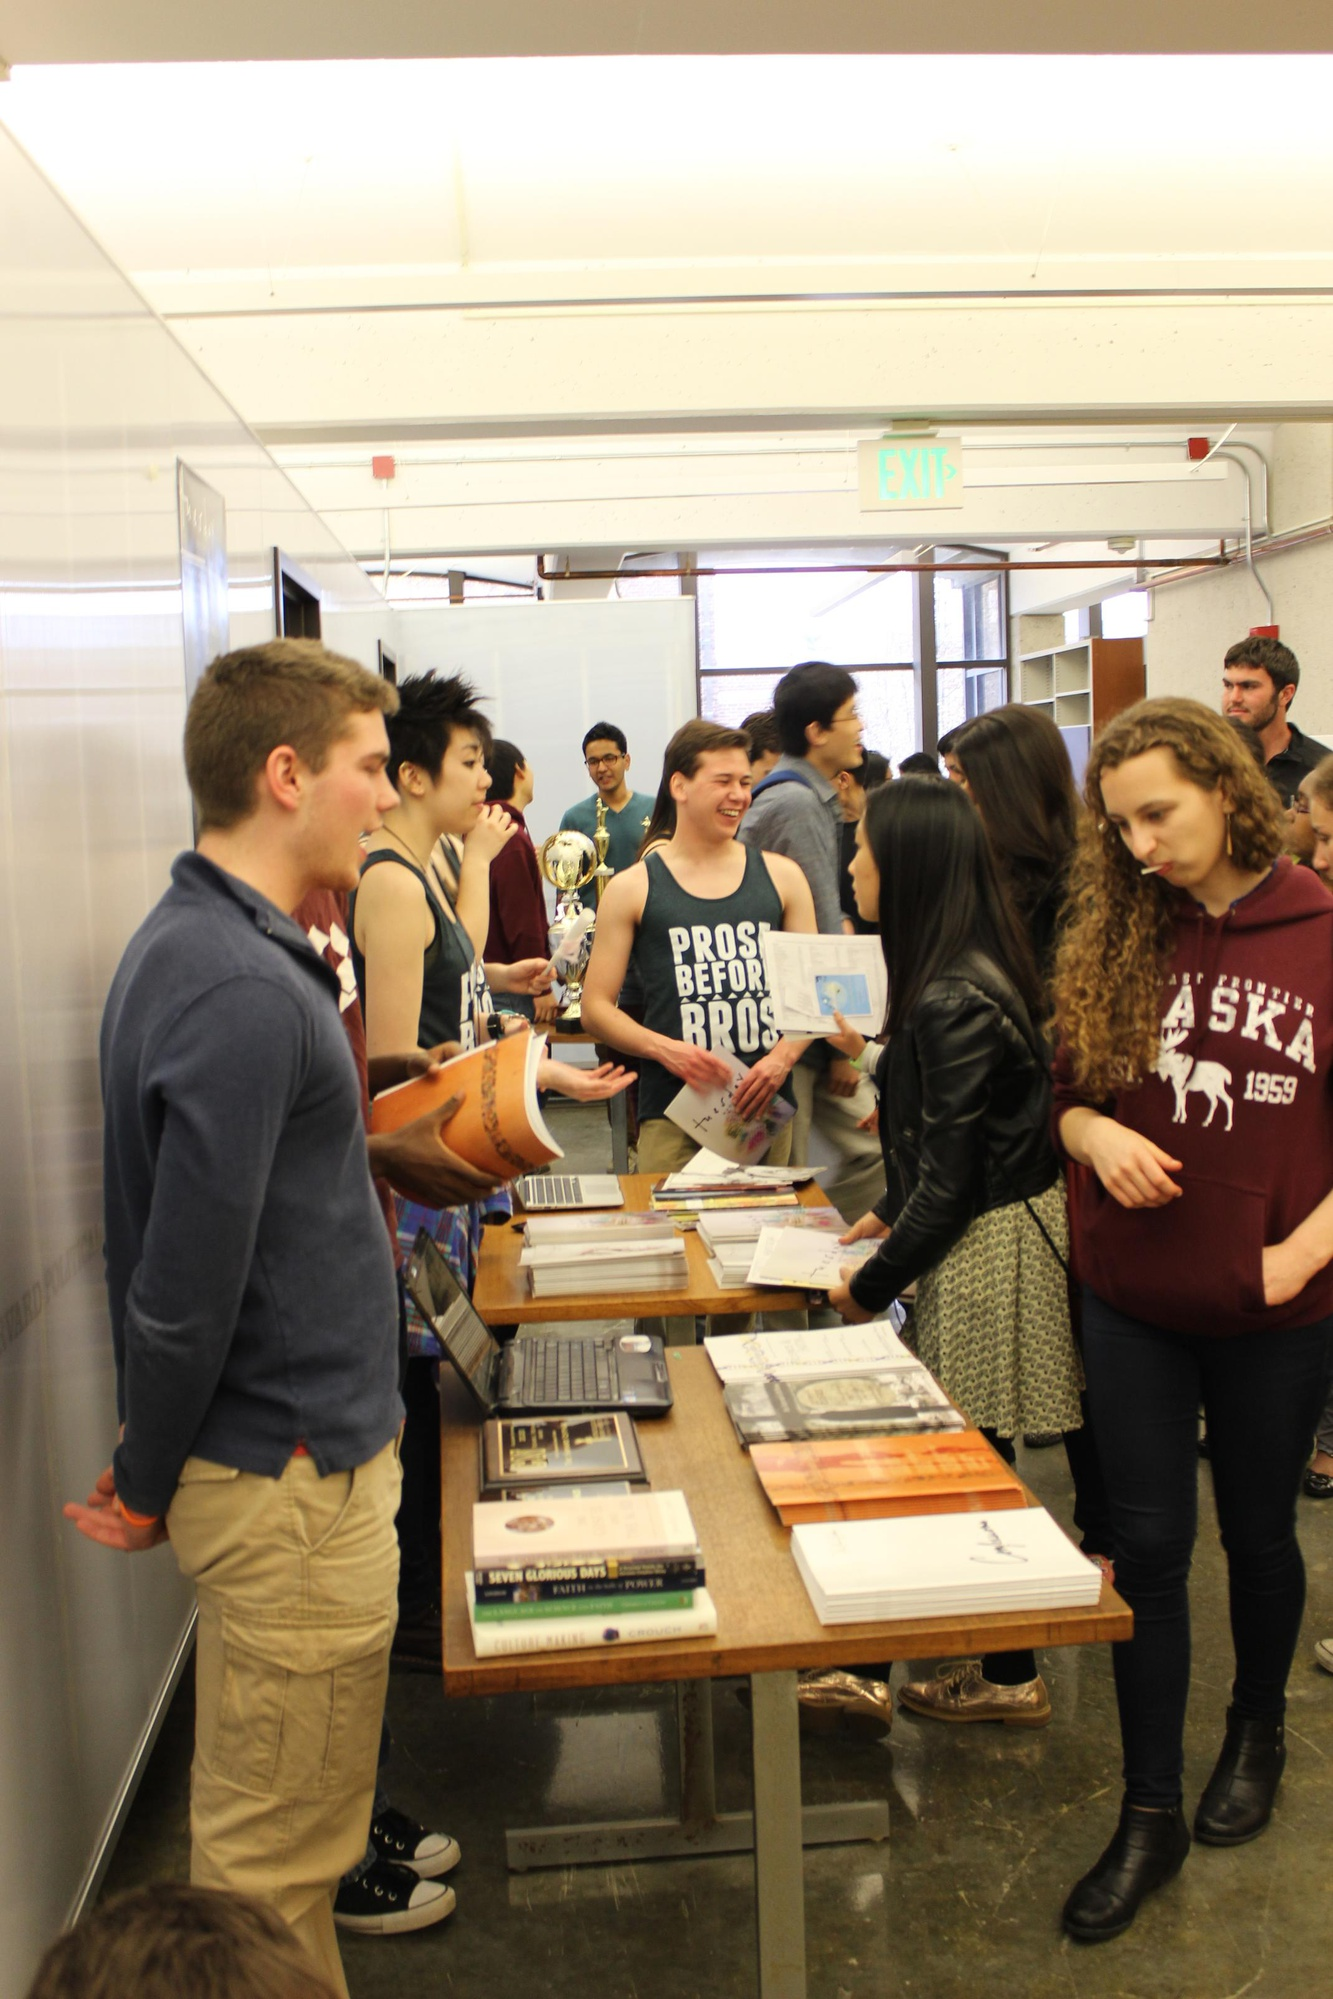 Prospective students attend the Extracurricular Activities Fair at the SOCH as part of Visitas.